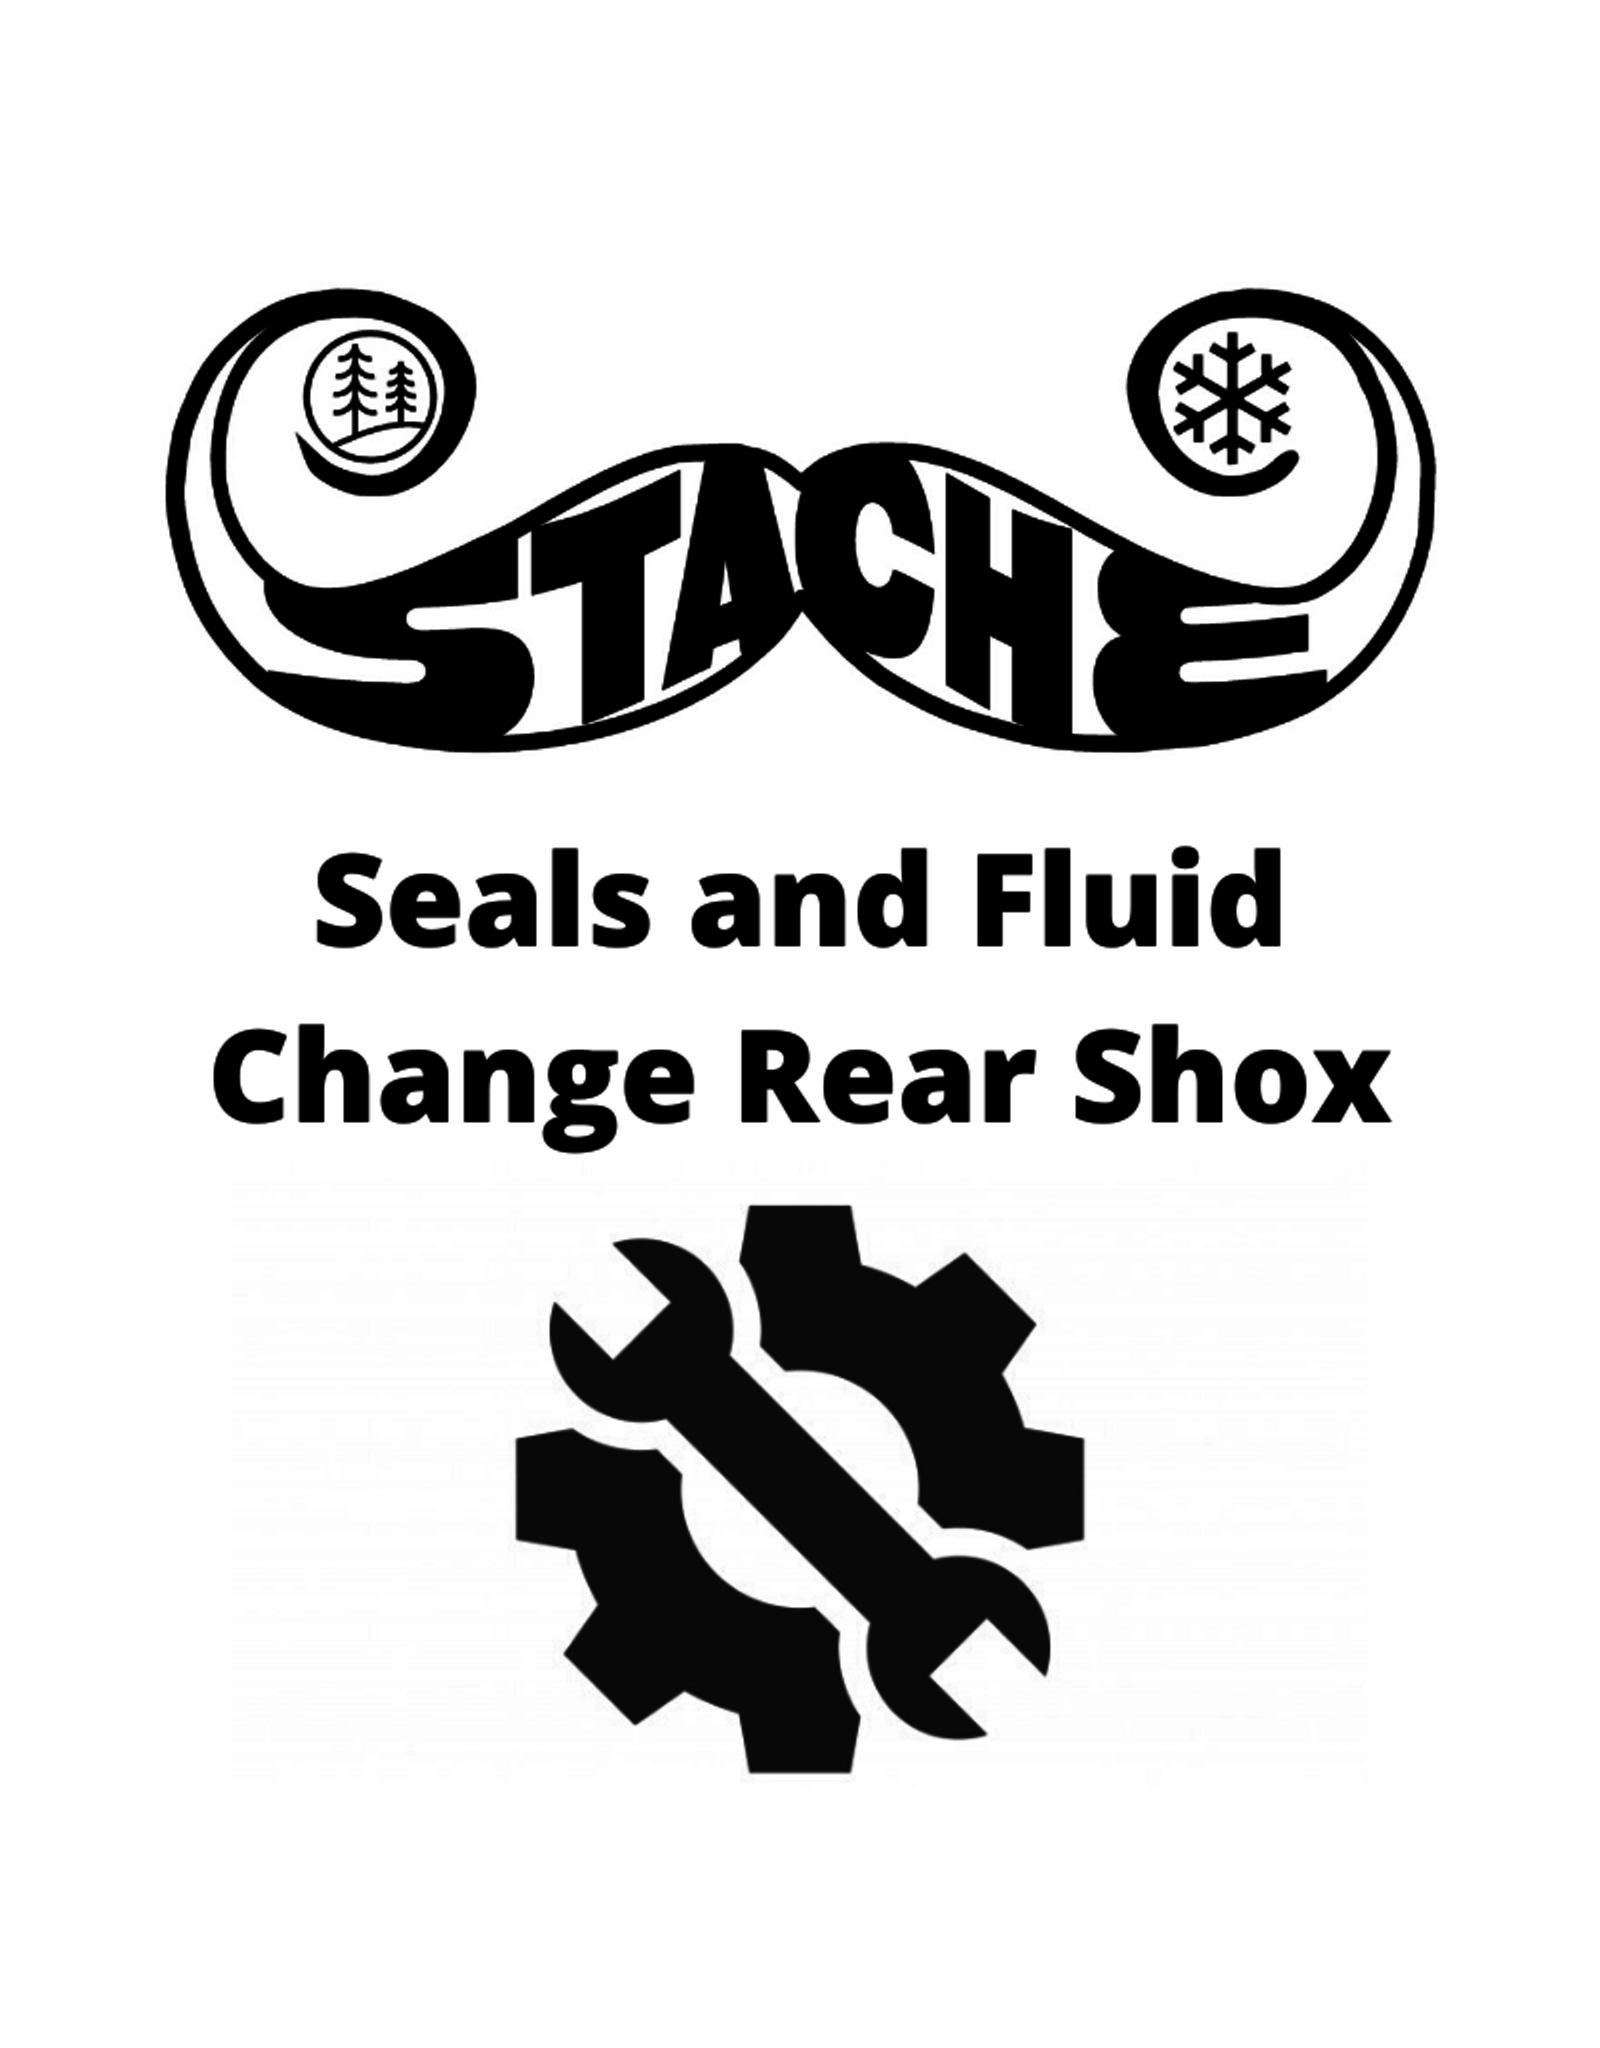 Seals and Fluid Change Rear Shox